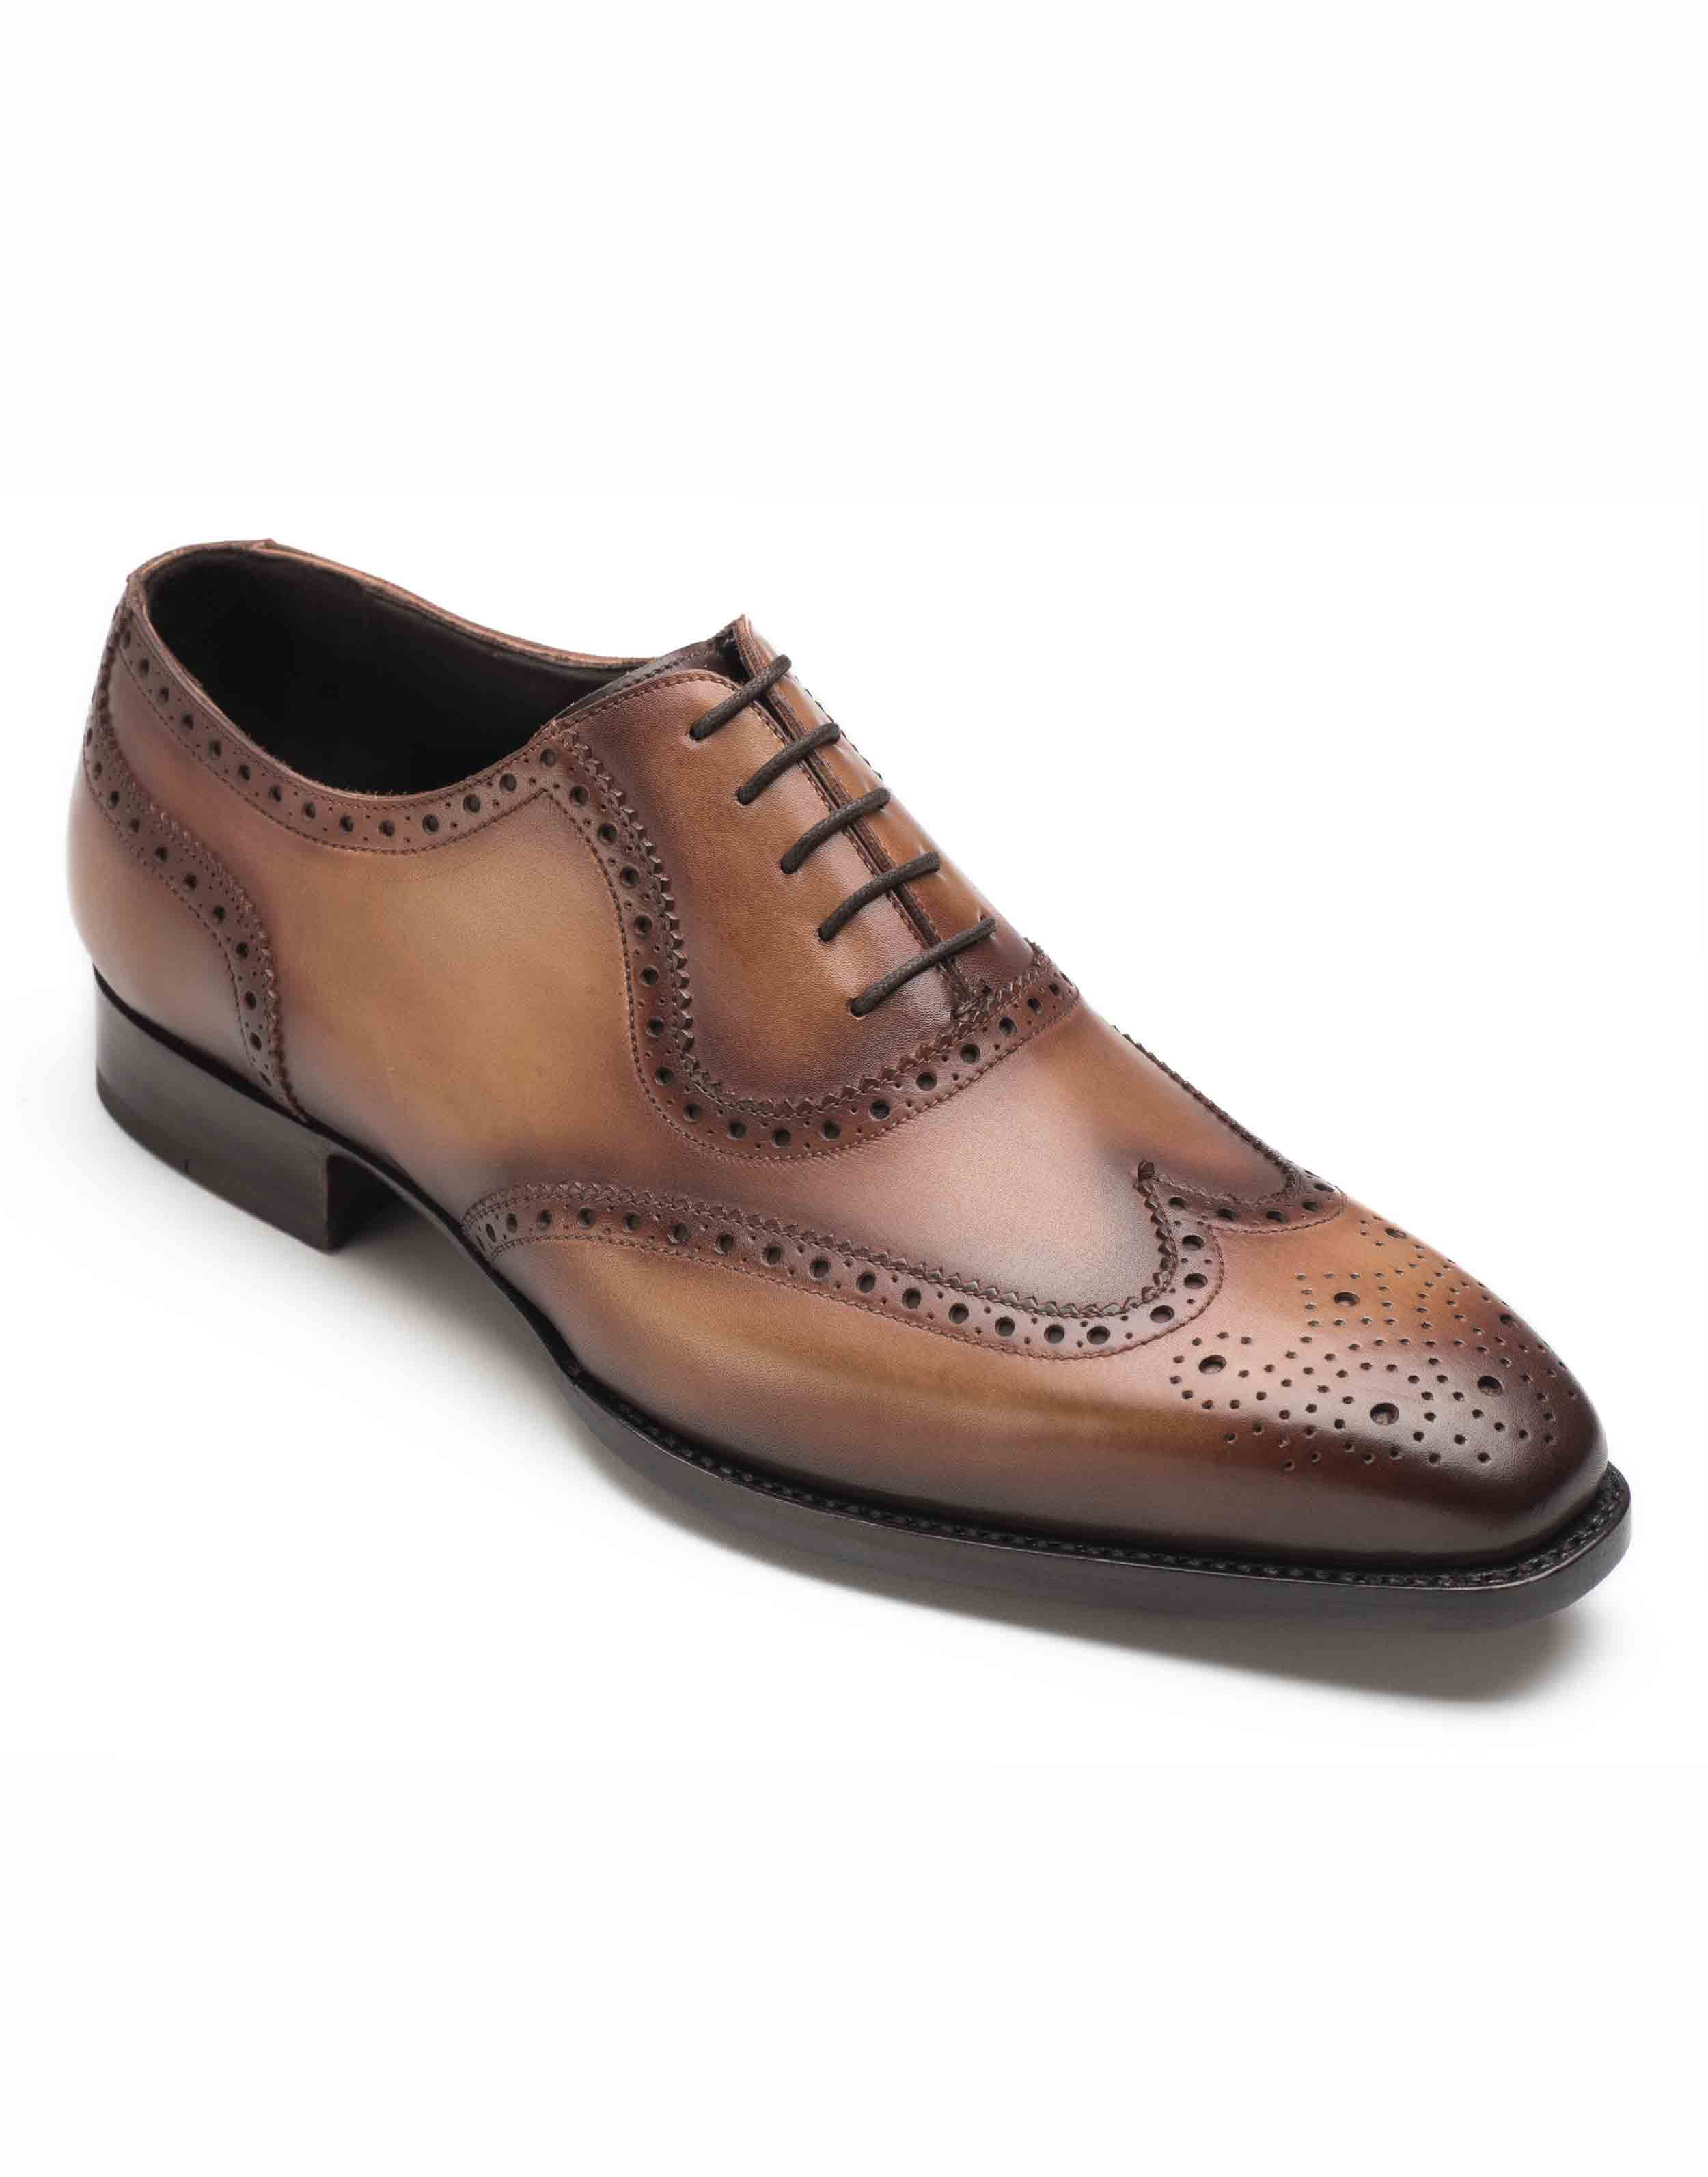 COGNAC BROGUE OXFORD SHOE2